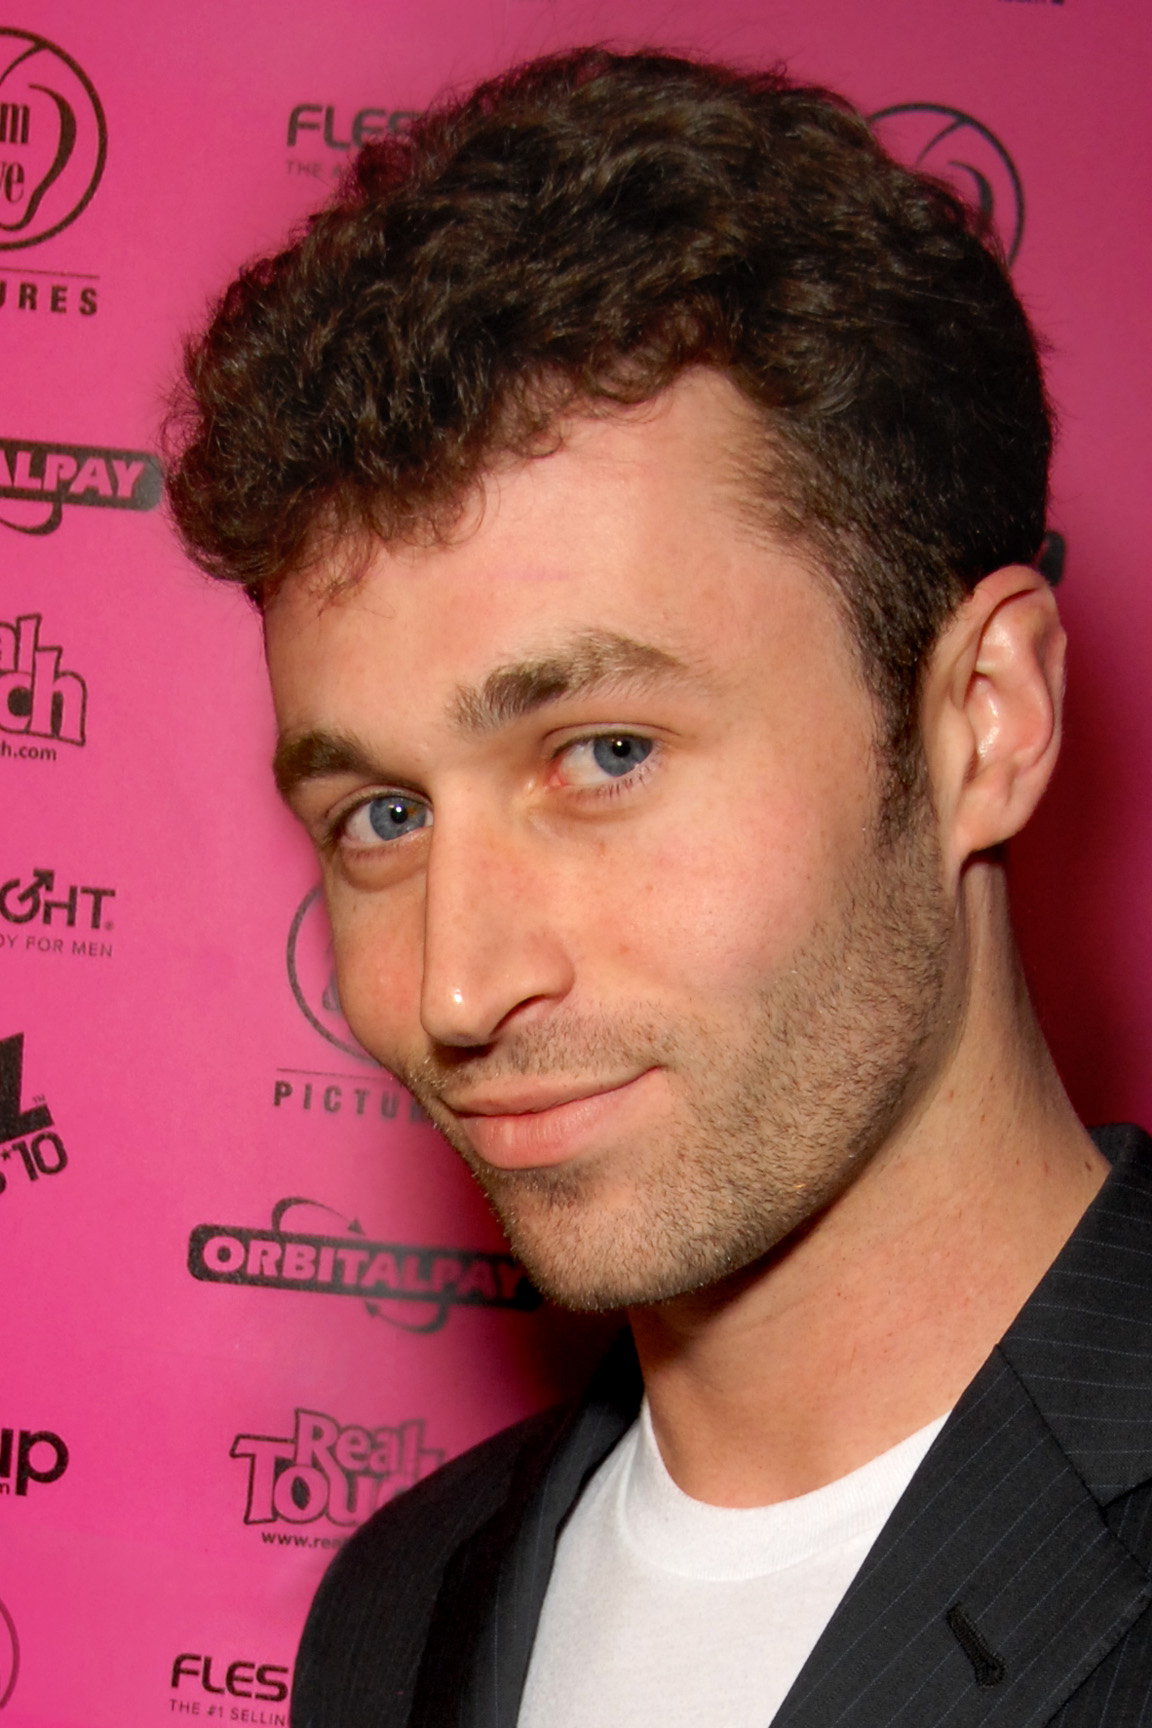 http://upload.wikimedia.org/wikipedia/commons/f/f4/James_Deen_2010.jpg